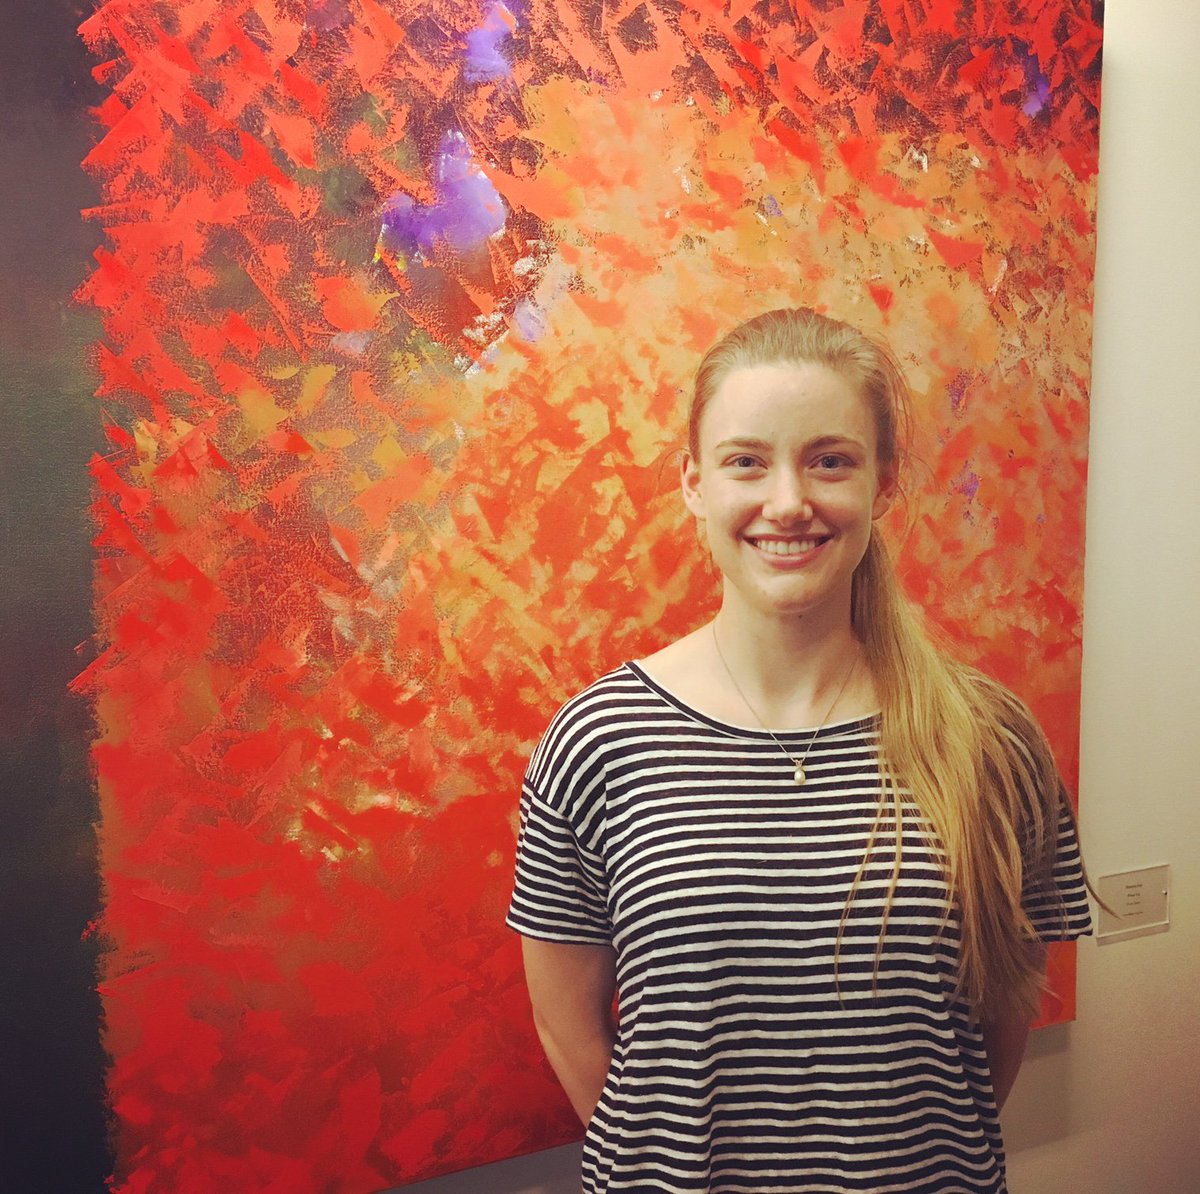 A big #welcome to our new #stewardship program assistant, Jacqlynn! #fredhutch #mentoring #research #abx #scca<br>http://pic.twitter.com/hsco5JYDiw